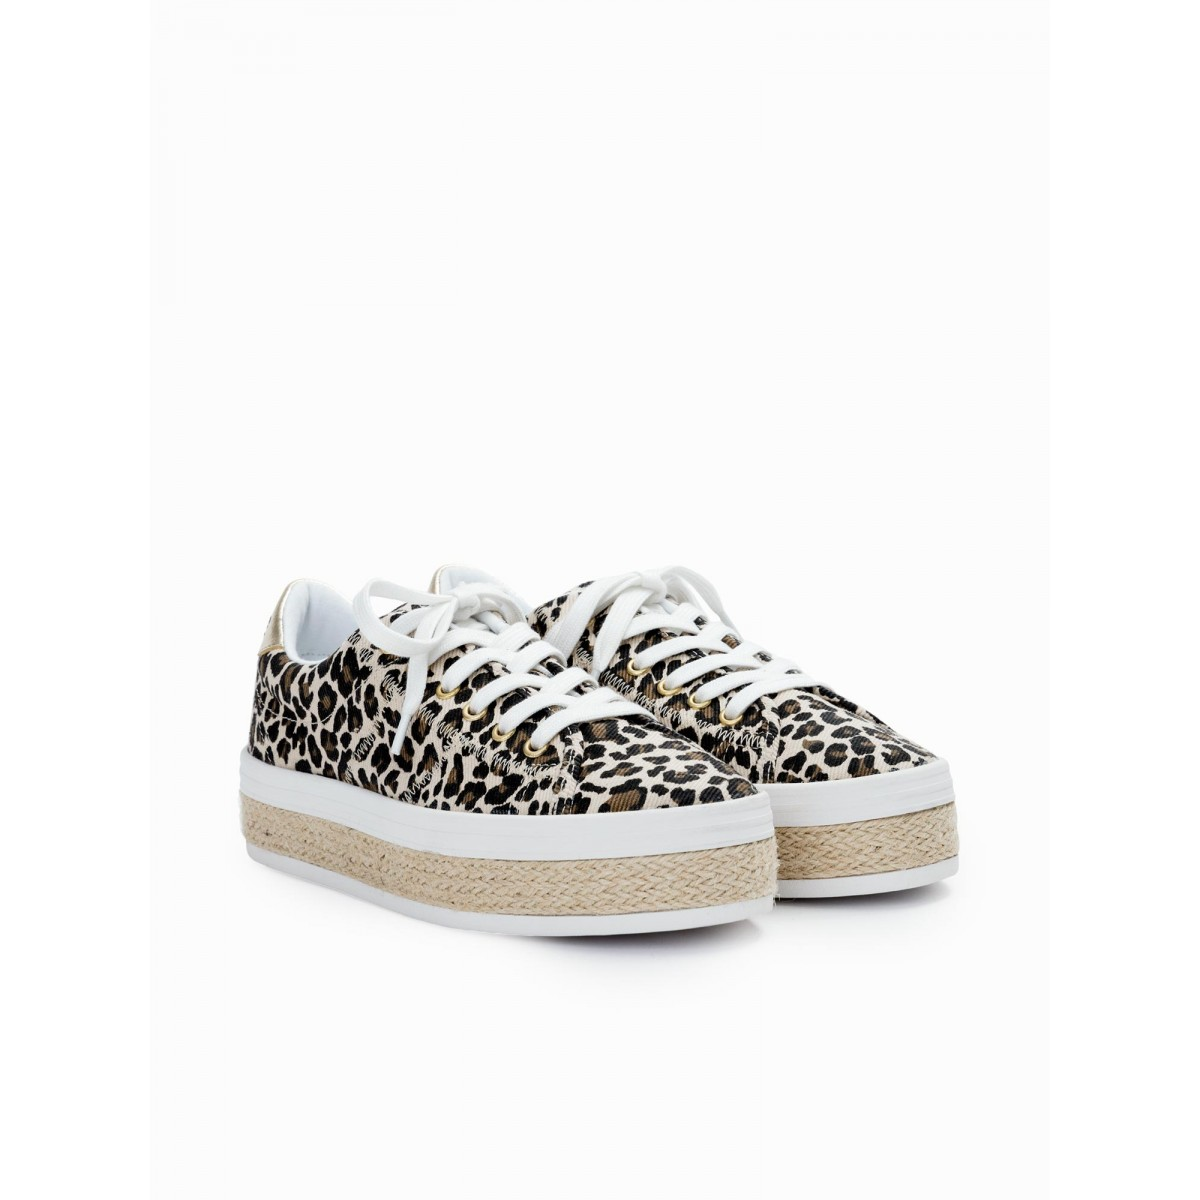 No Name MALIBU SNEAKER - CANVAS/LEOPARD - NATURAL